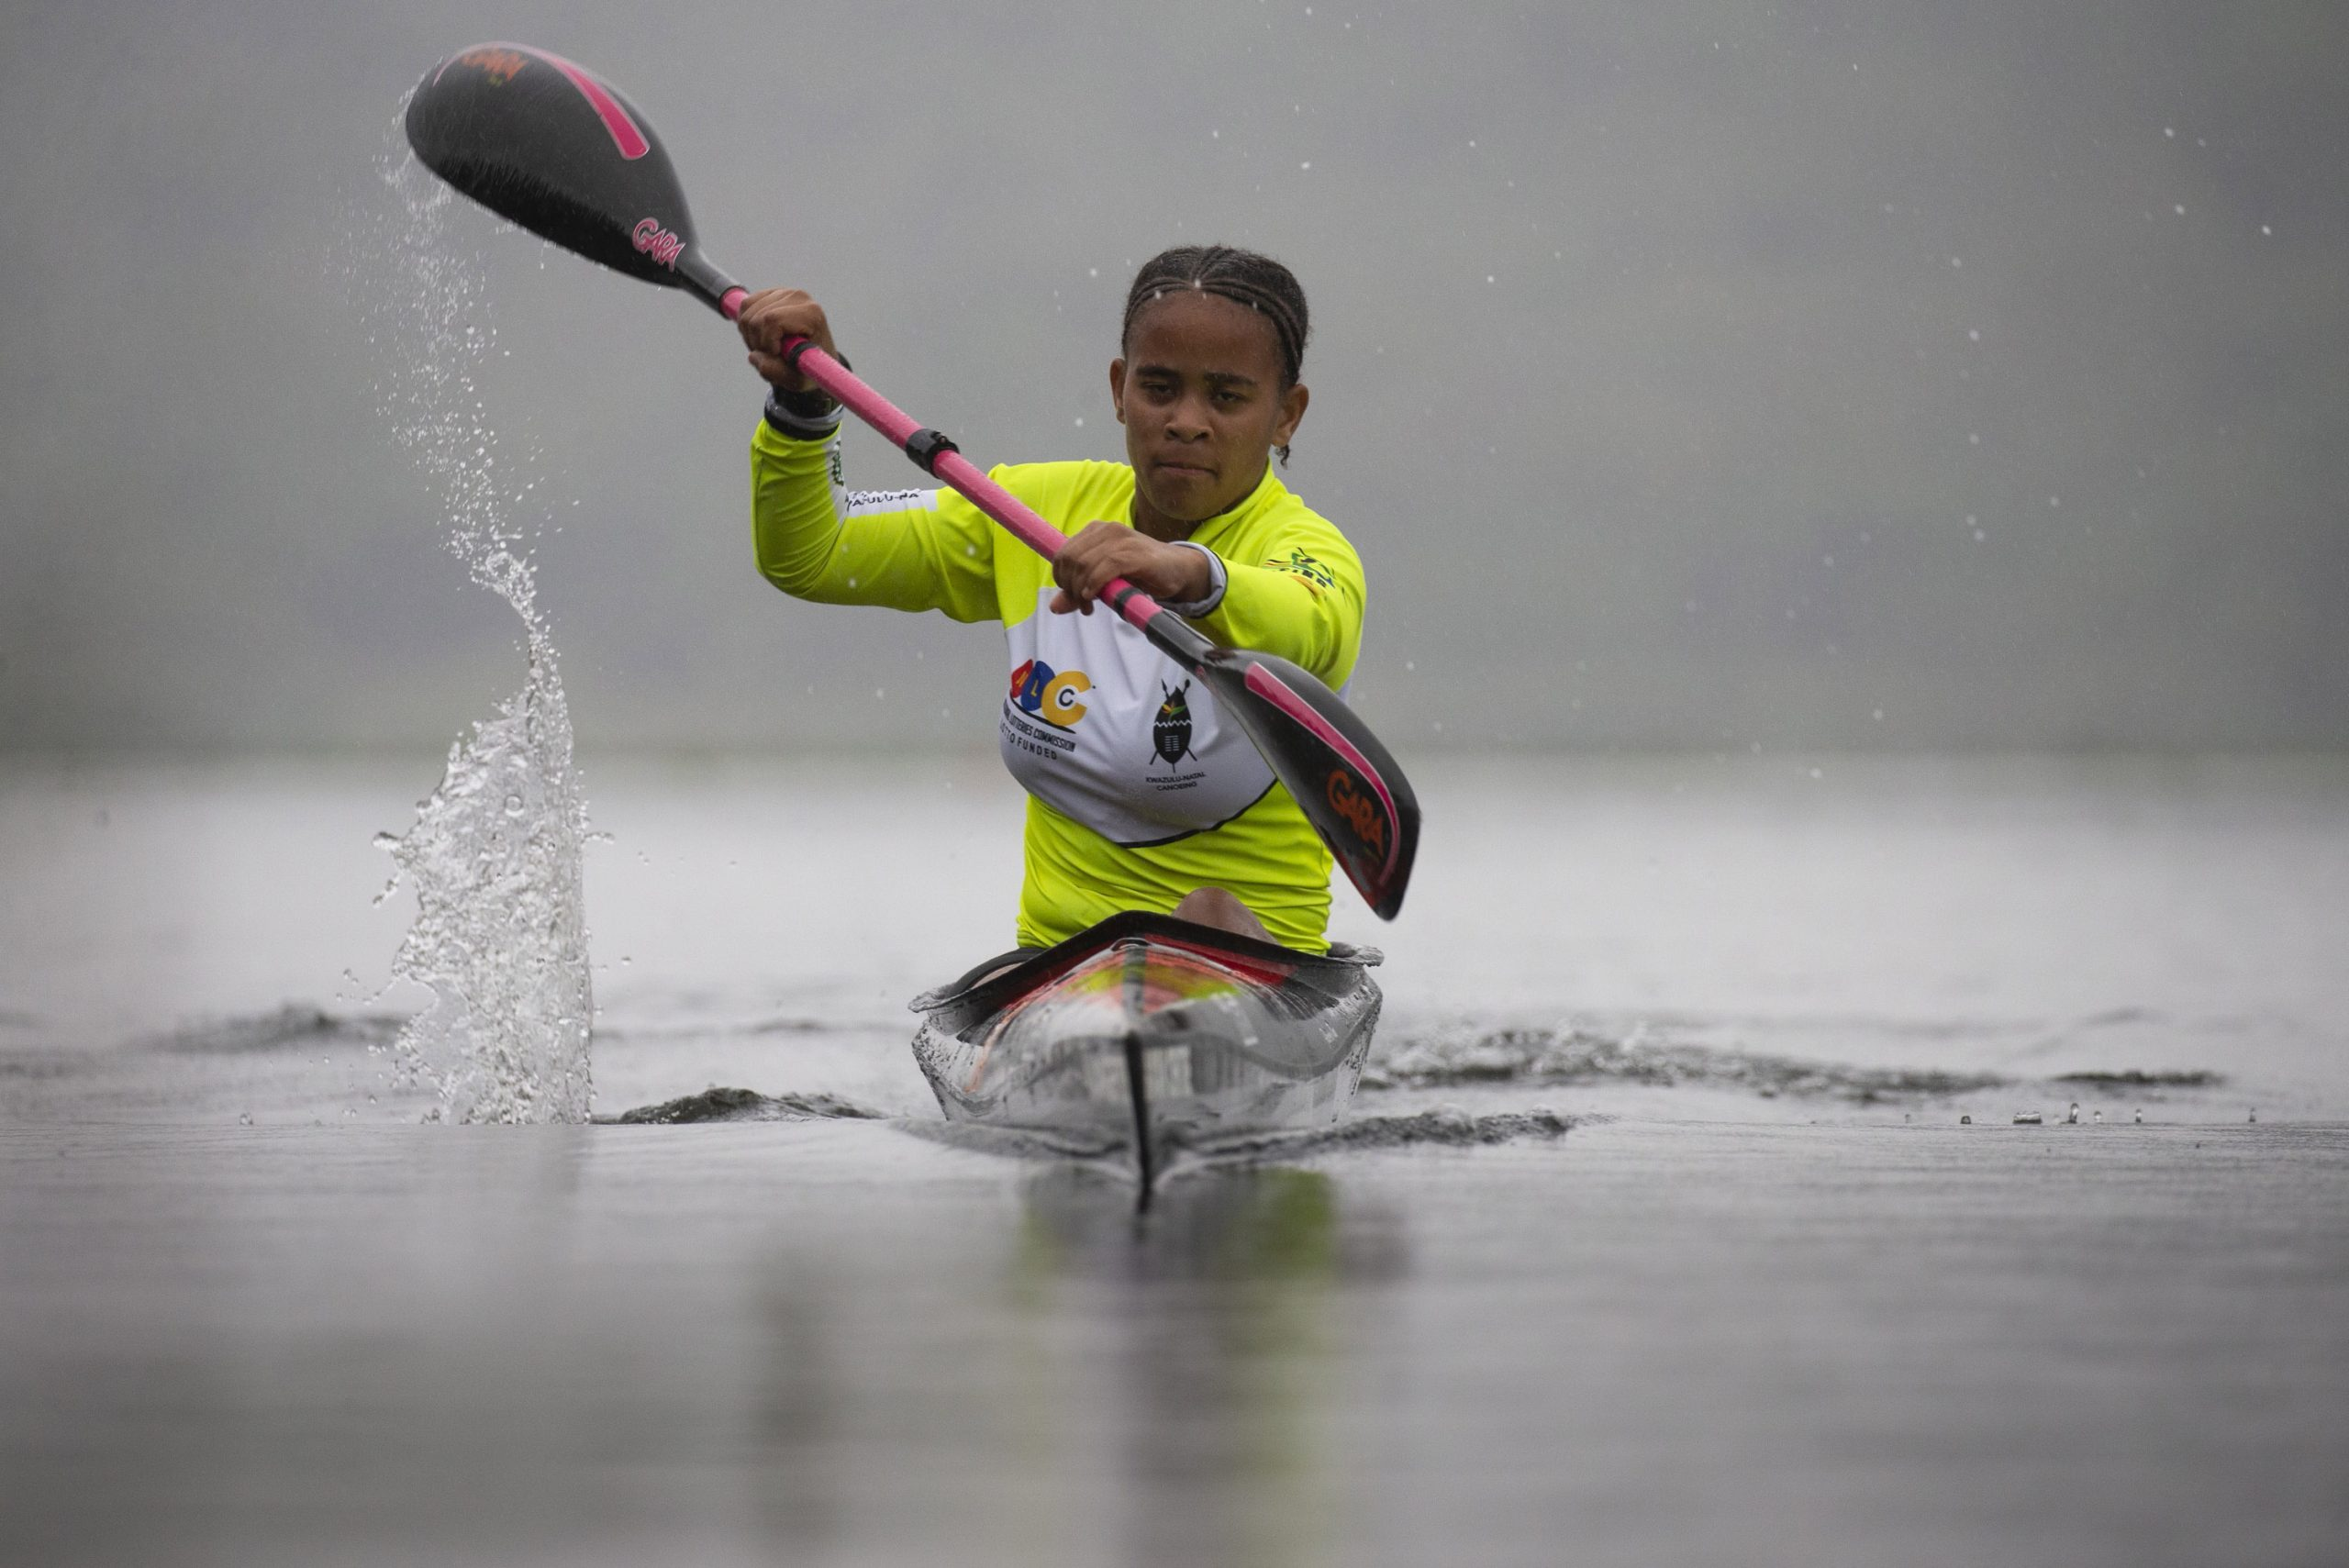 8 October 2019: Nosipho Mthembu training on the Shongweni Dam. (Photograph by Gallo Images/ Sunday Times/ Rogan Ward)